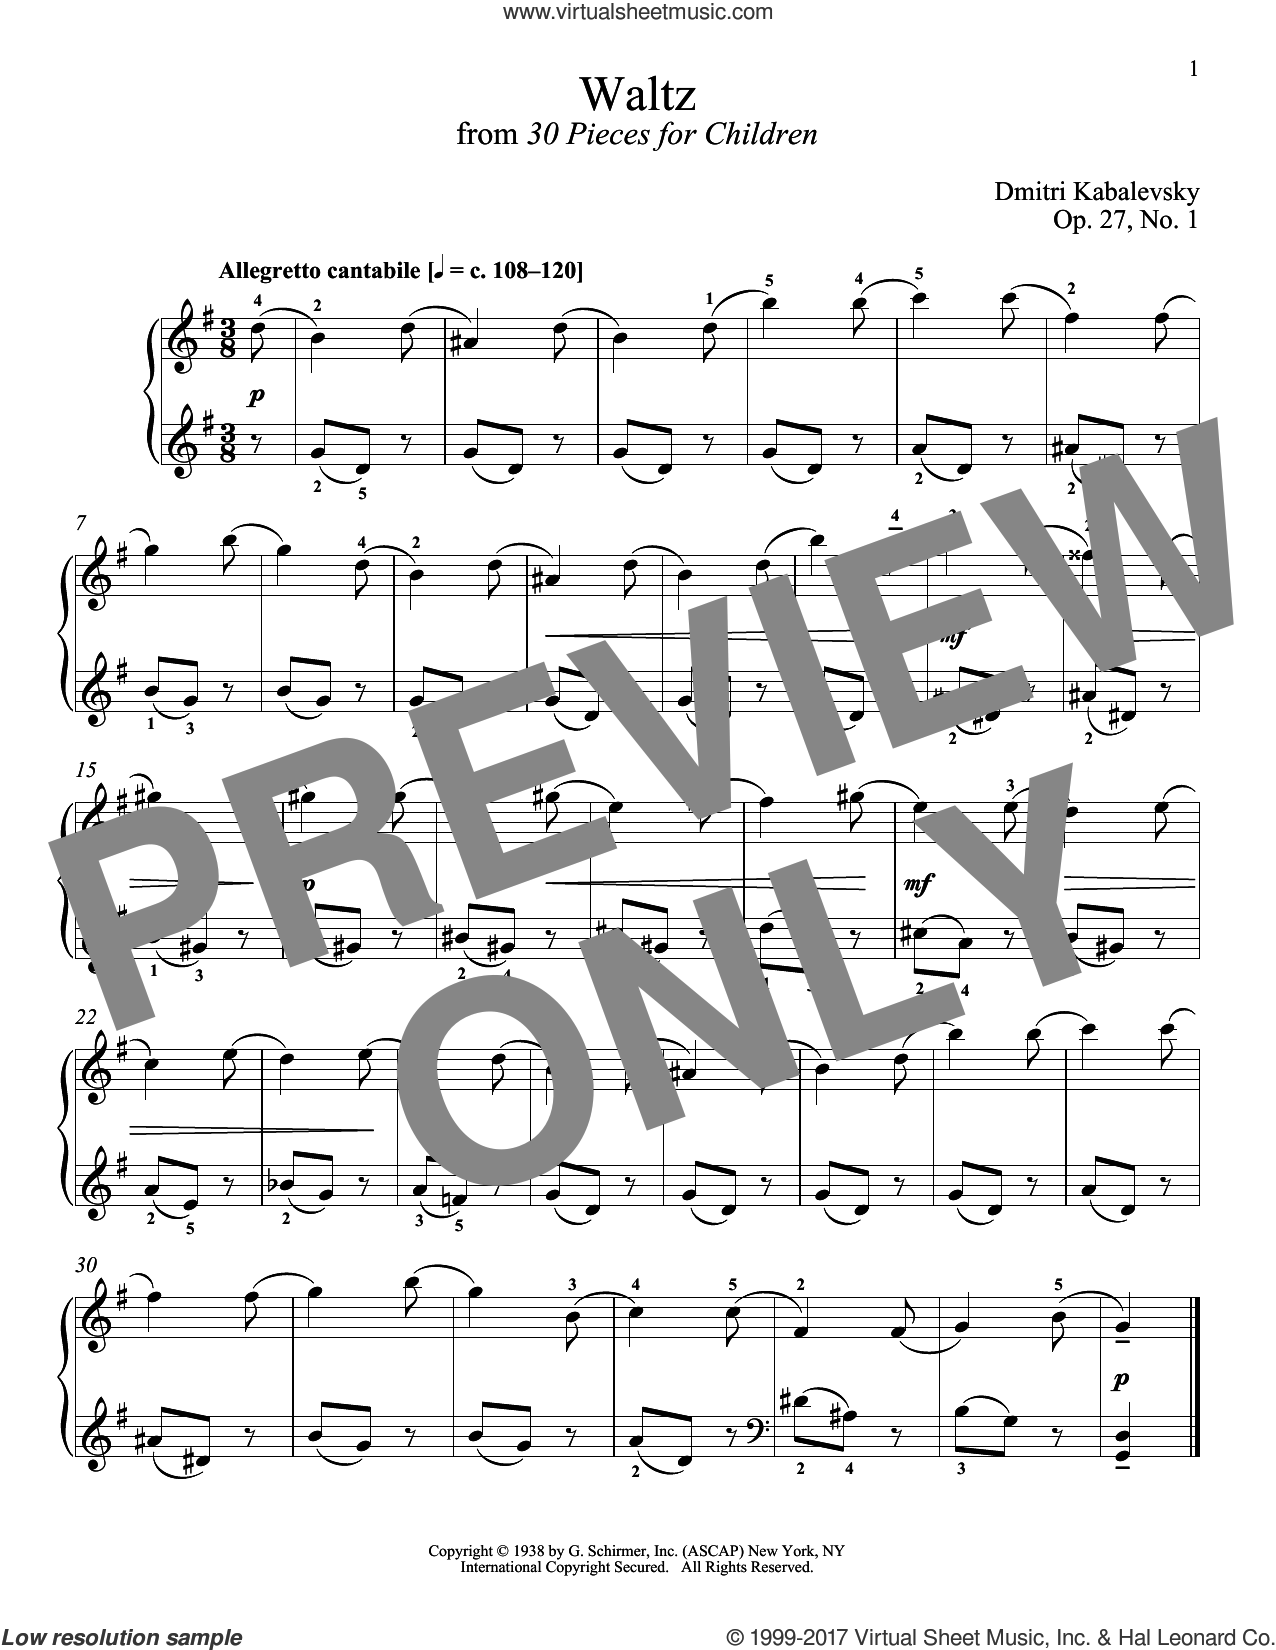 Waltz, Op. 27, No. 1 sheet music for piano solo by Dmitri Kabalevsky, Jeffrey Biegel, Margaret Otwell and Richard Walters, classical score, intermediate skill level